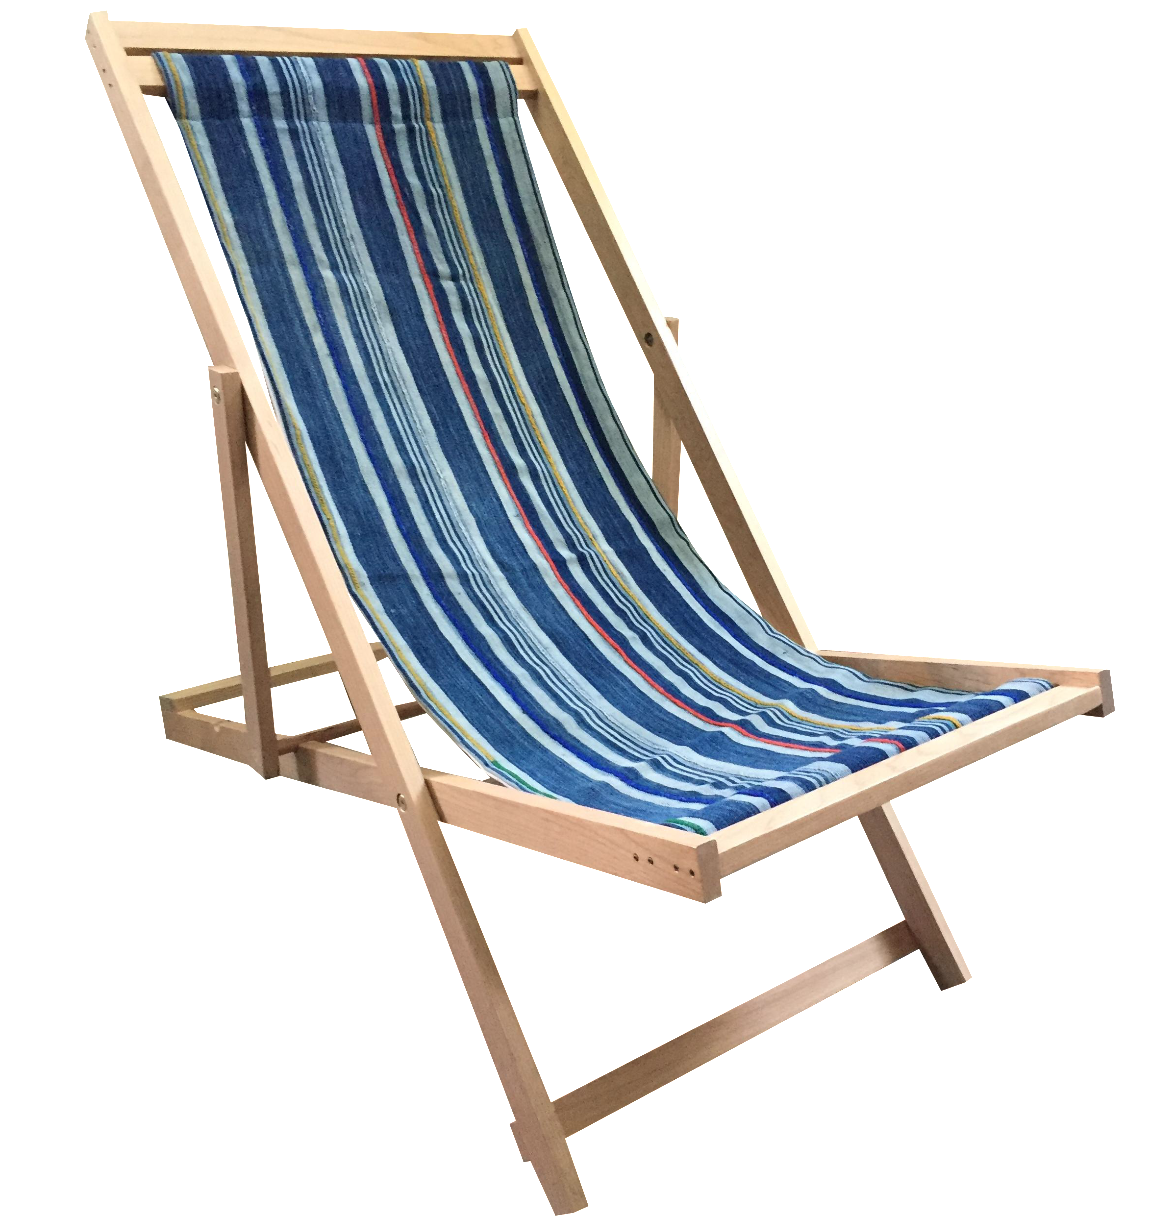 Folding Sling Chair with Indigo Textile